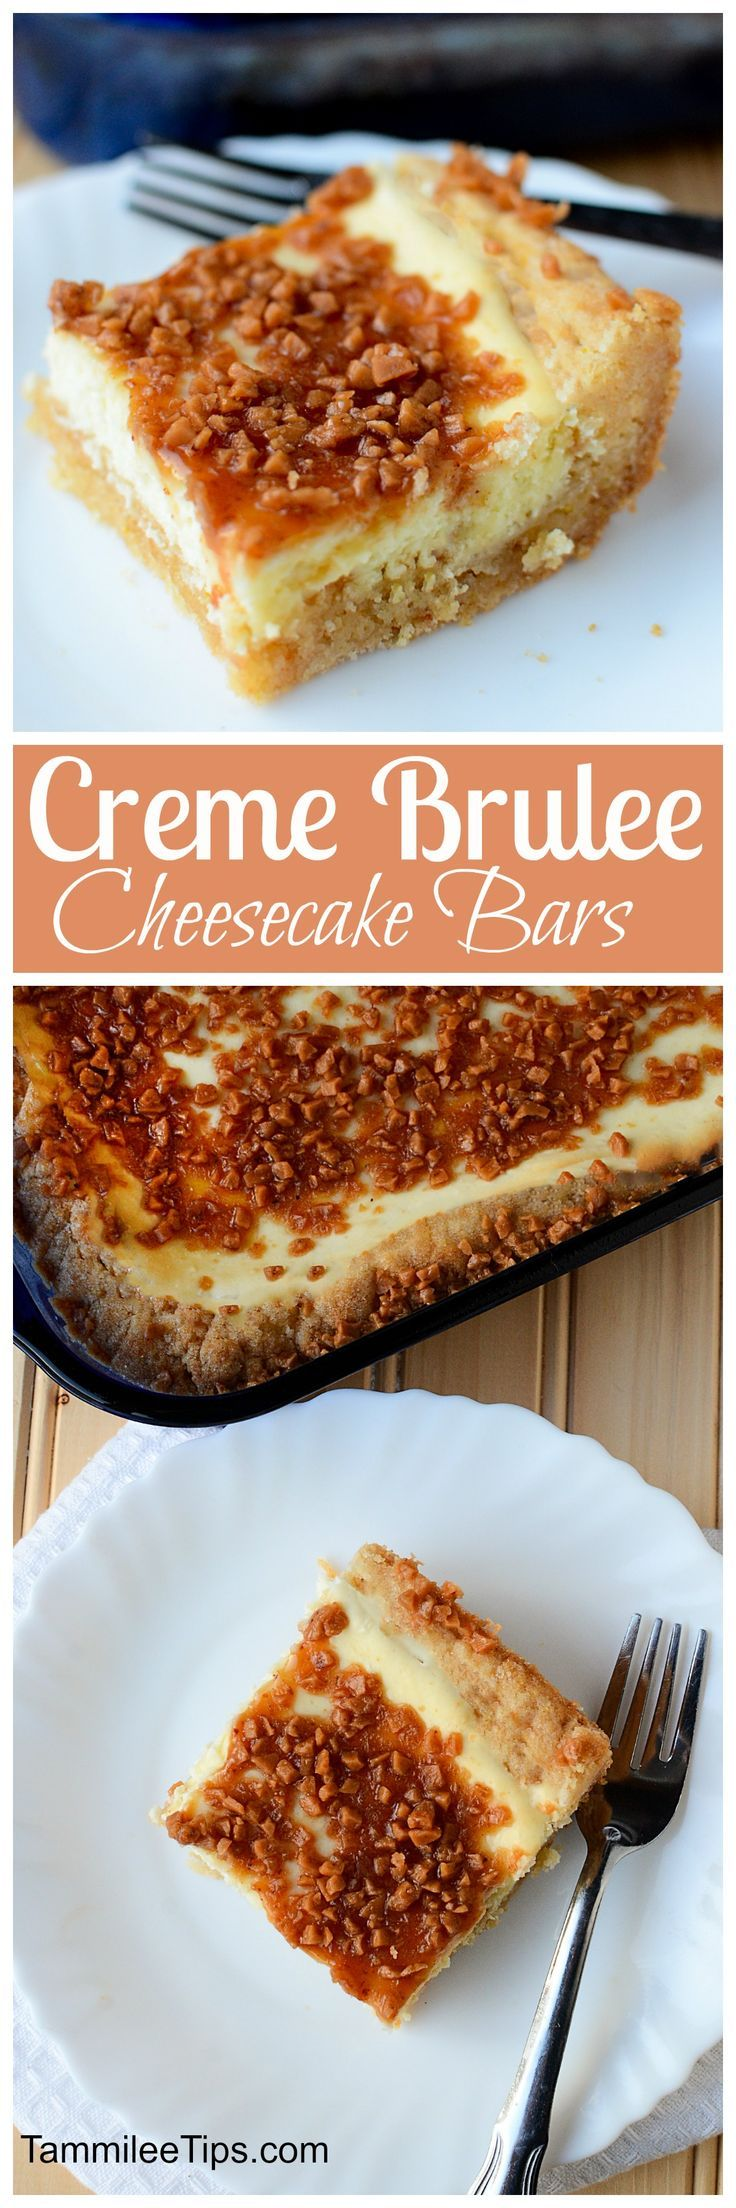 Creme Brulee Cheese Cake Bars that are hard to resist! Crème brulee ...